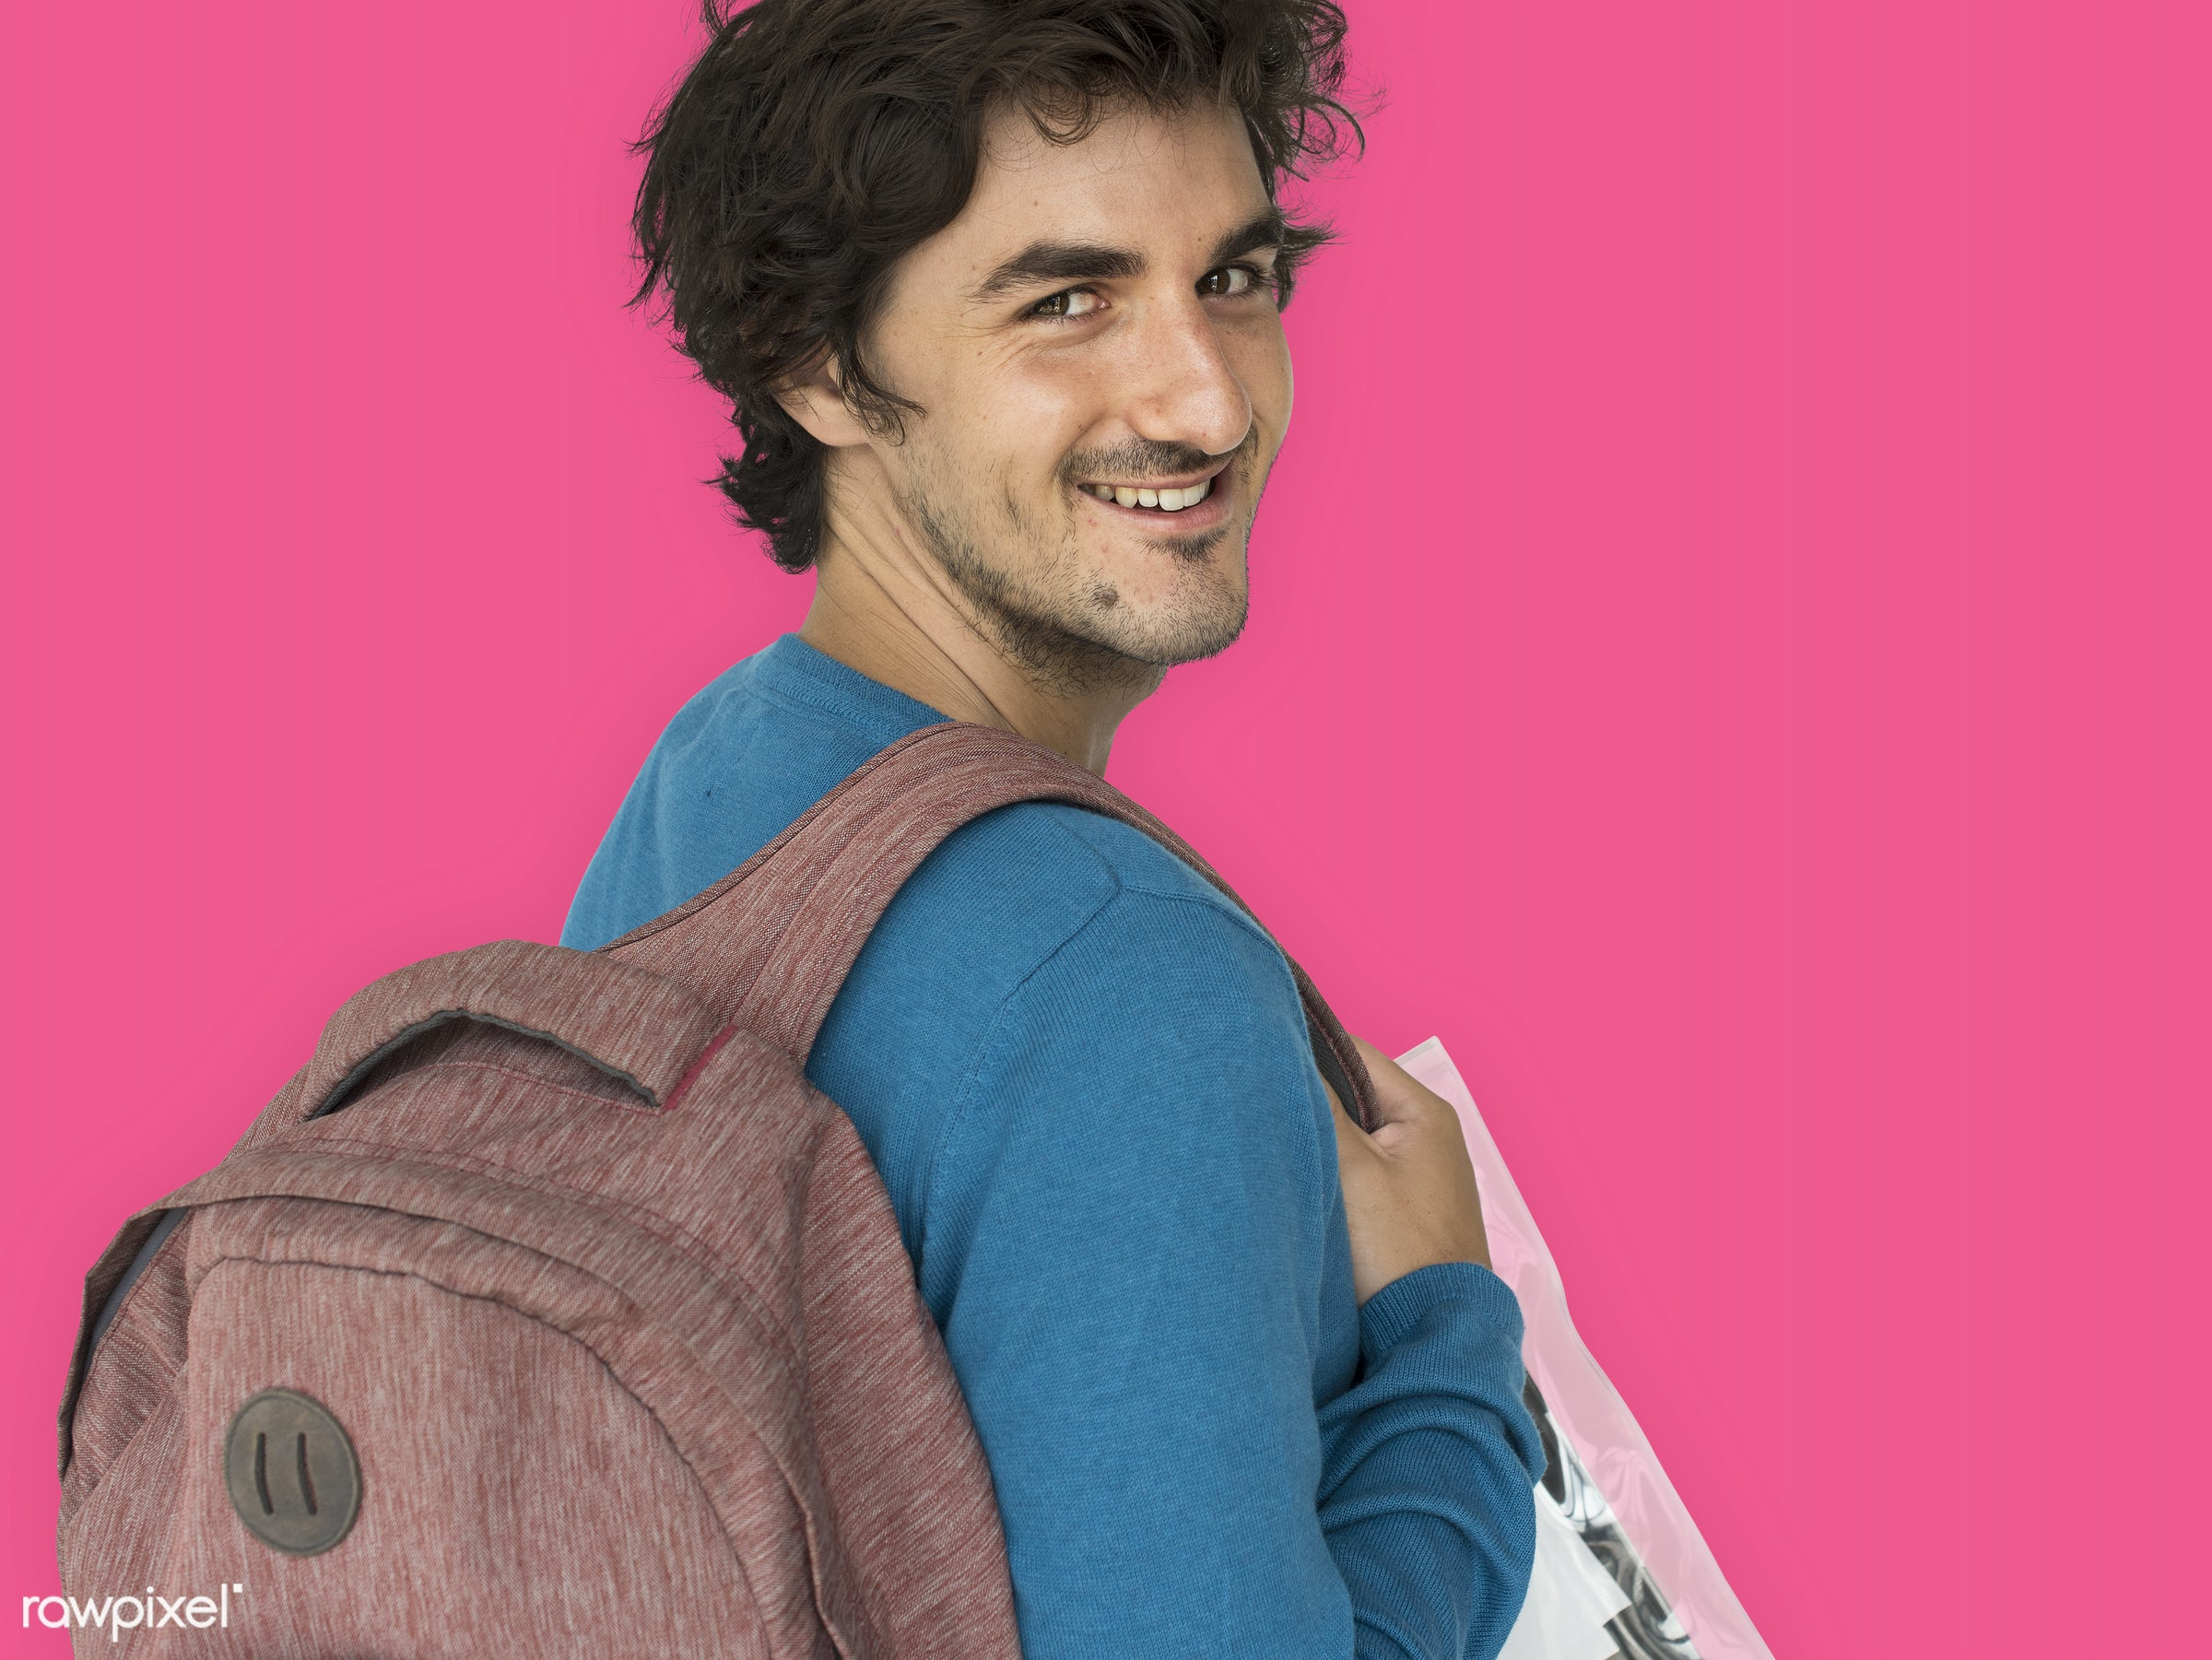 studio, expression, person, vibrant, people, caucasian, lifestyle, schoolbag, pink, smile, positive, cheerful, isolated, bag...